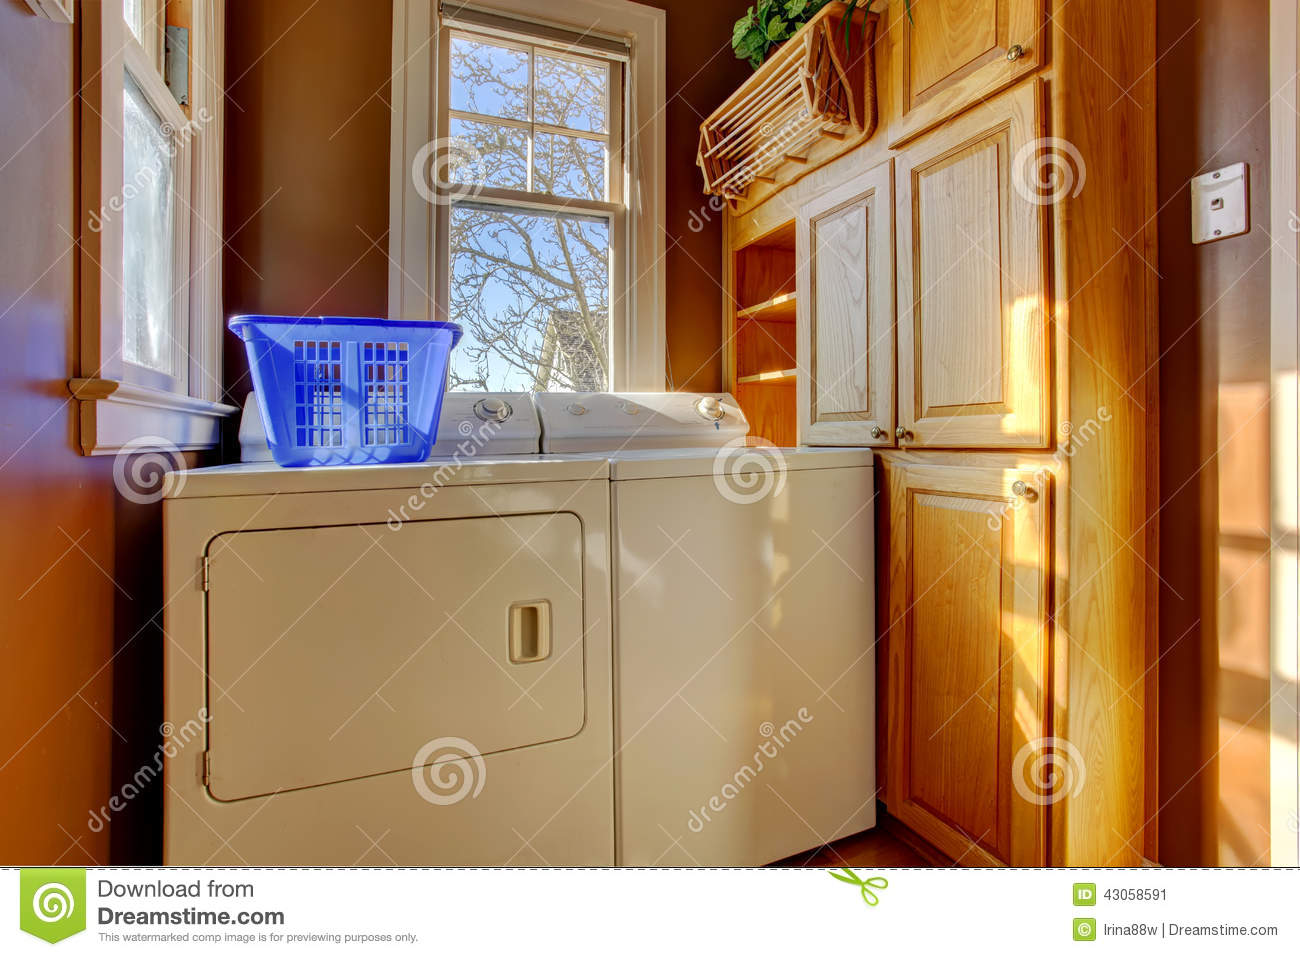 Small Laundry Room With Washer And Dryer Stock Photo